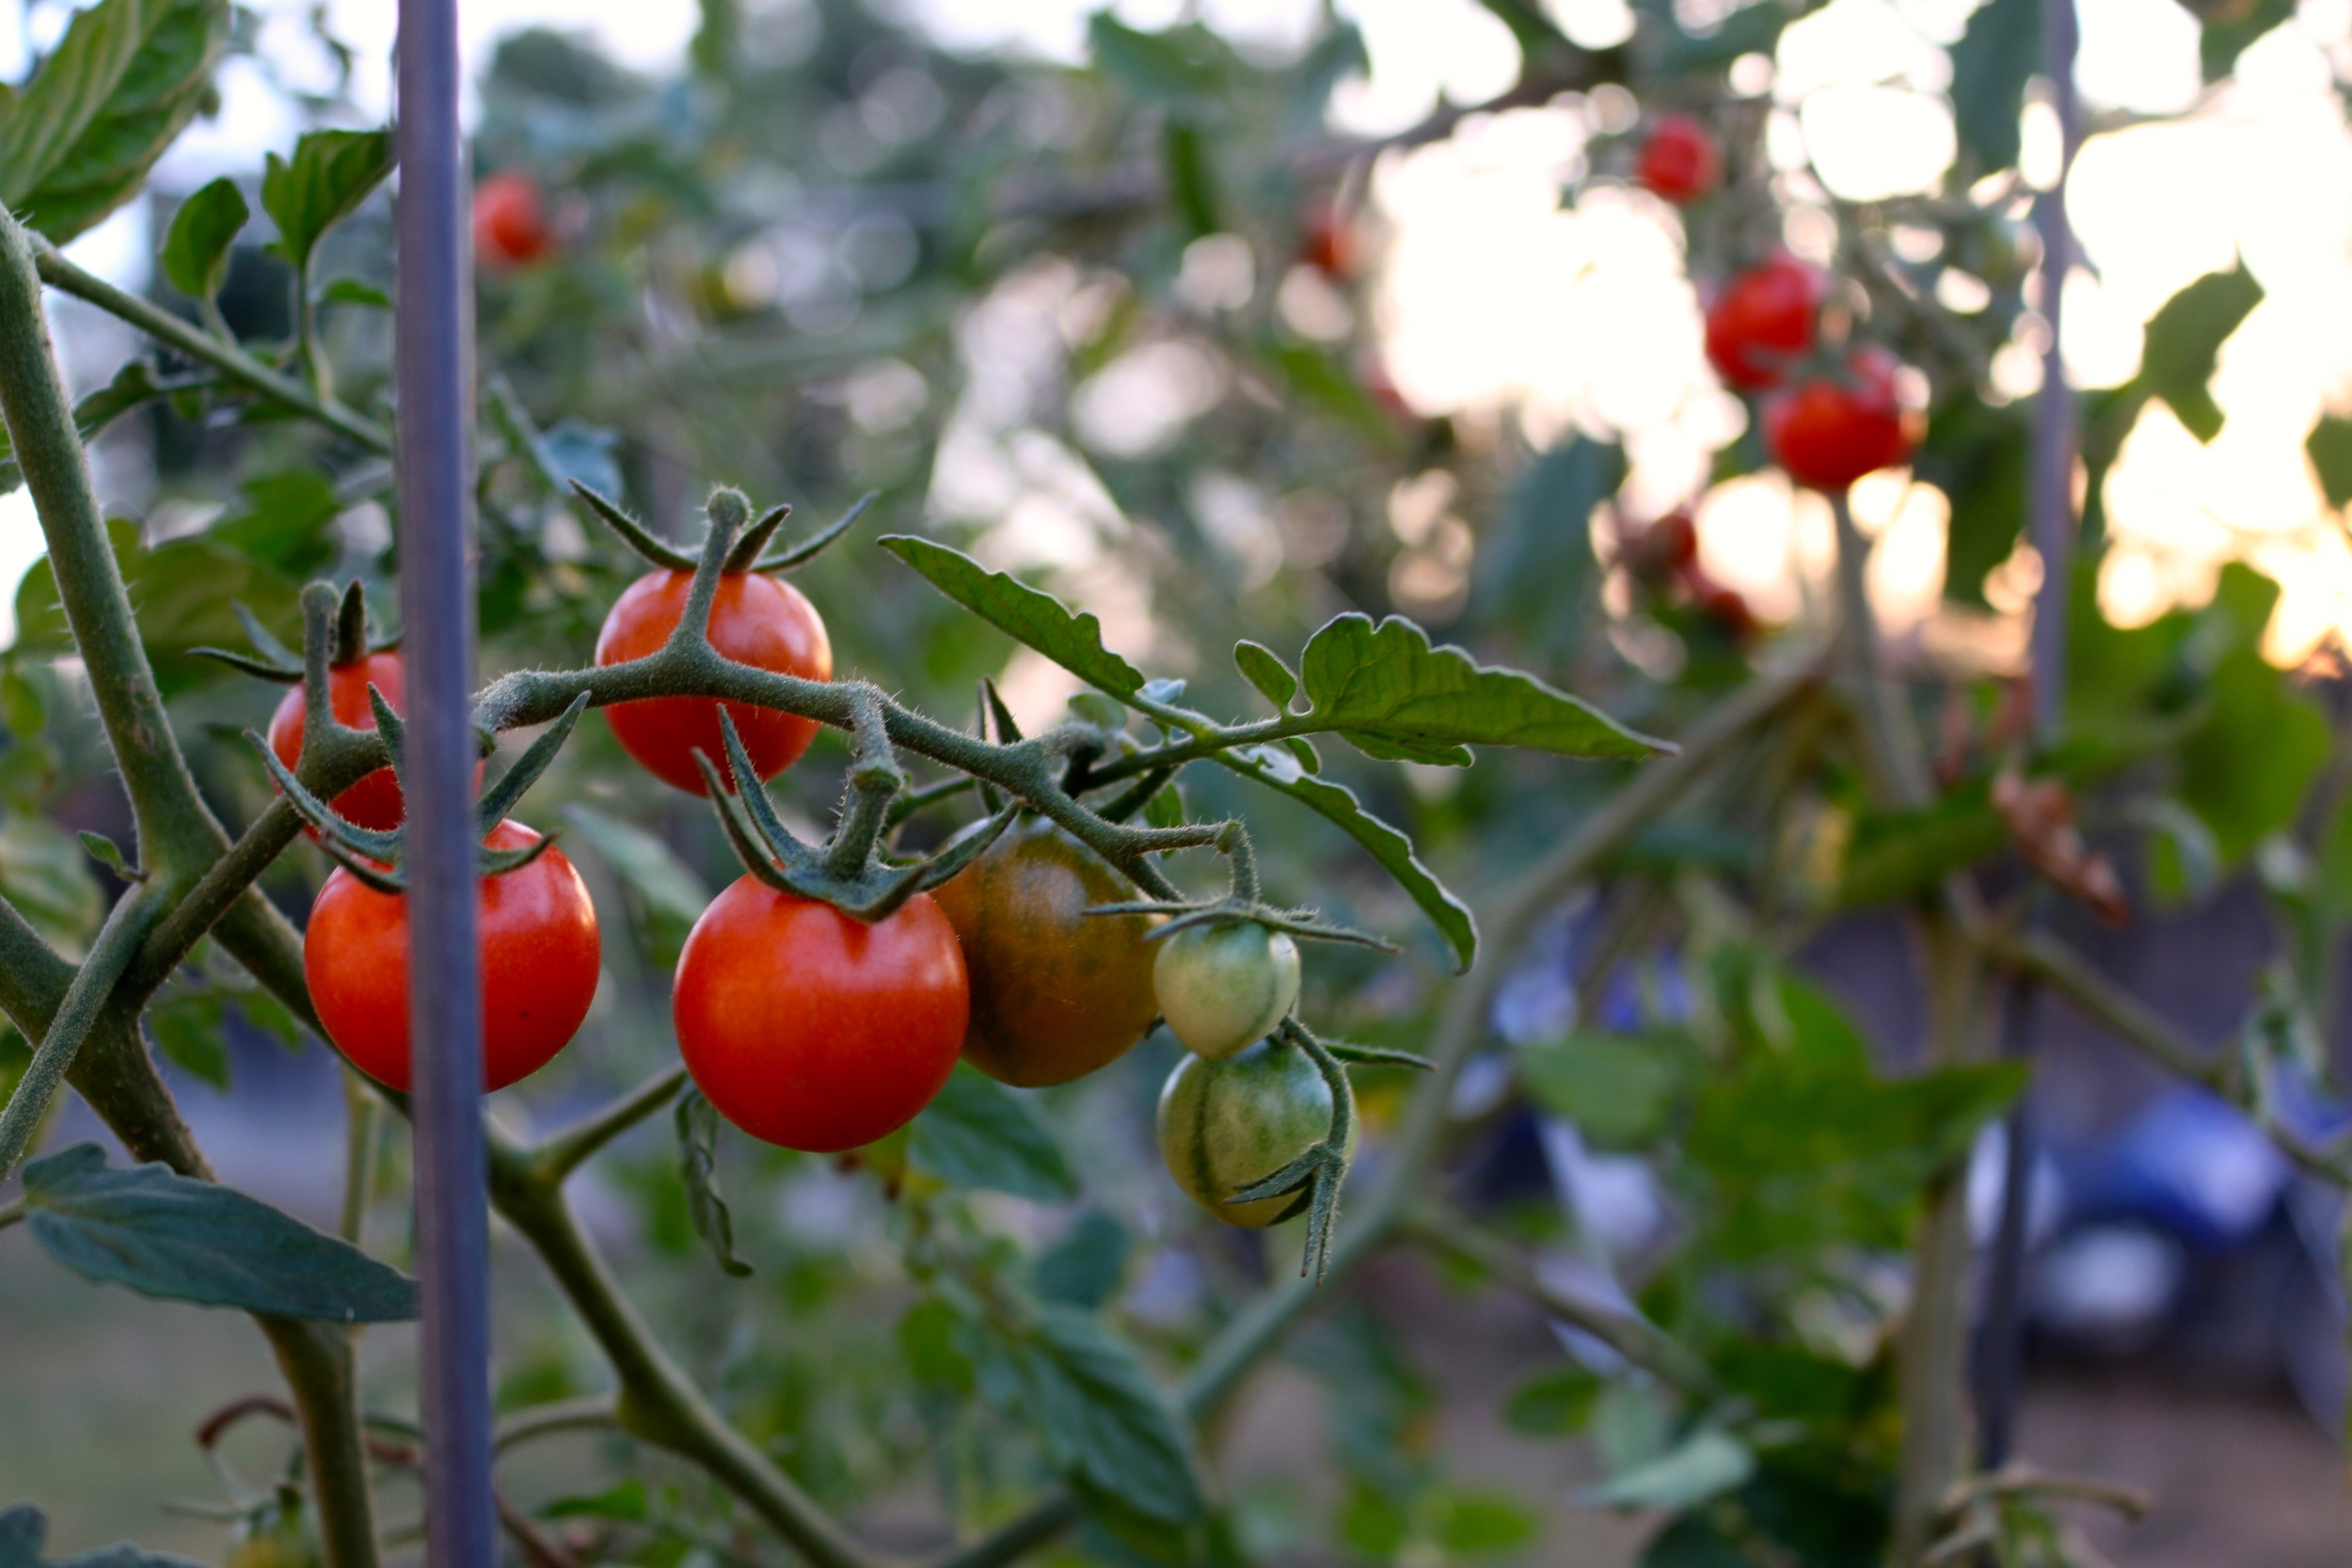 My volenteer tomatoes taste just like candy and are already bursting with tomatoes.